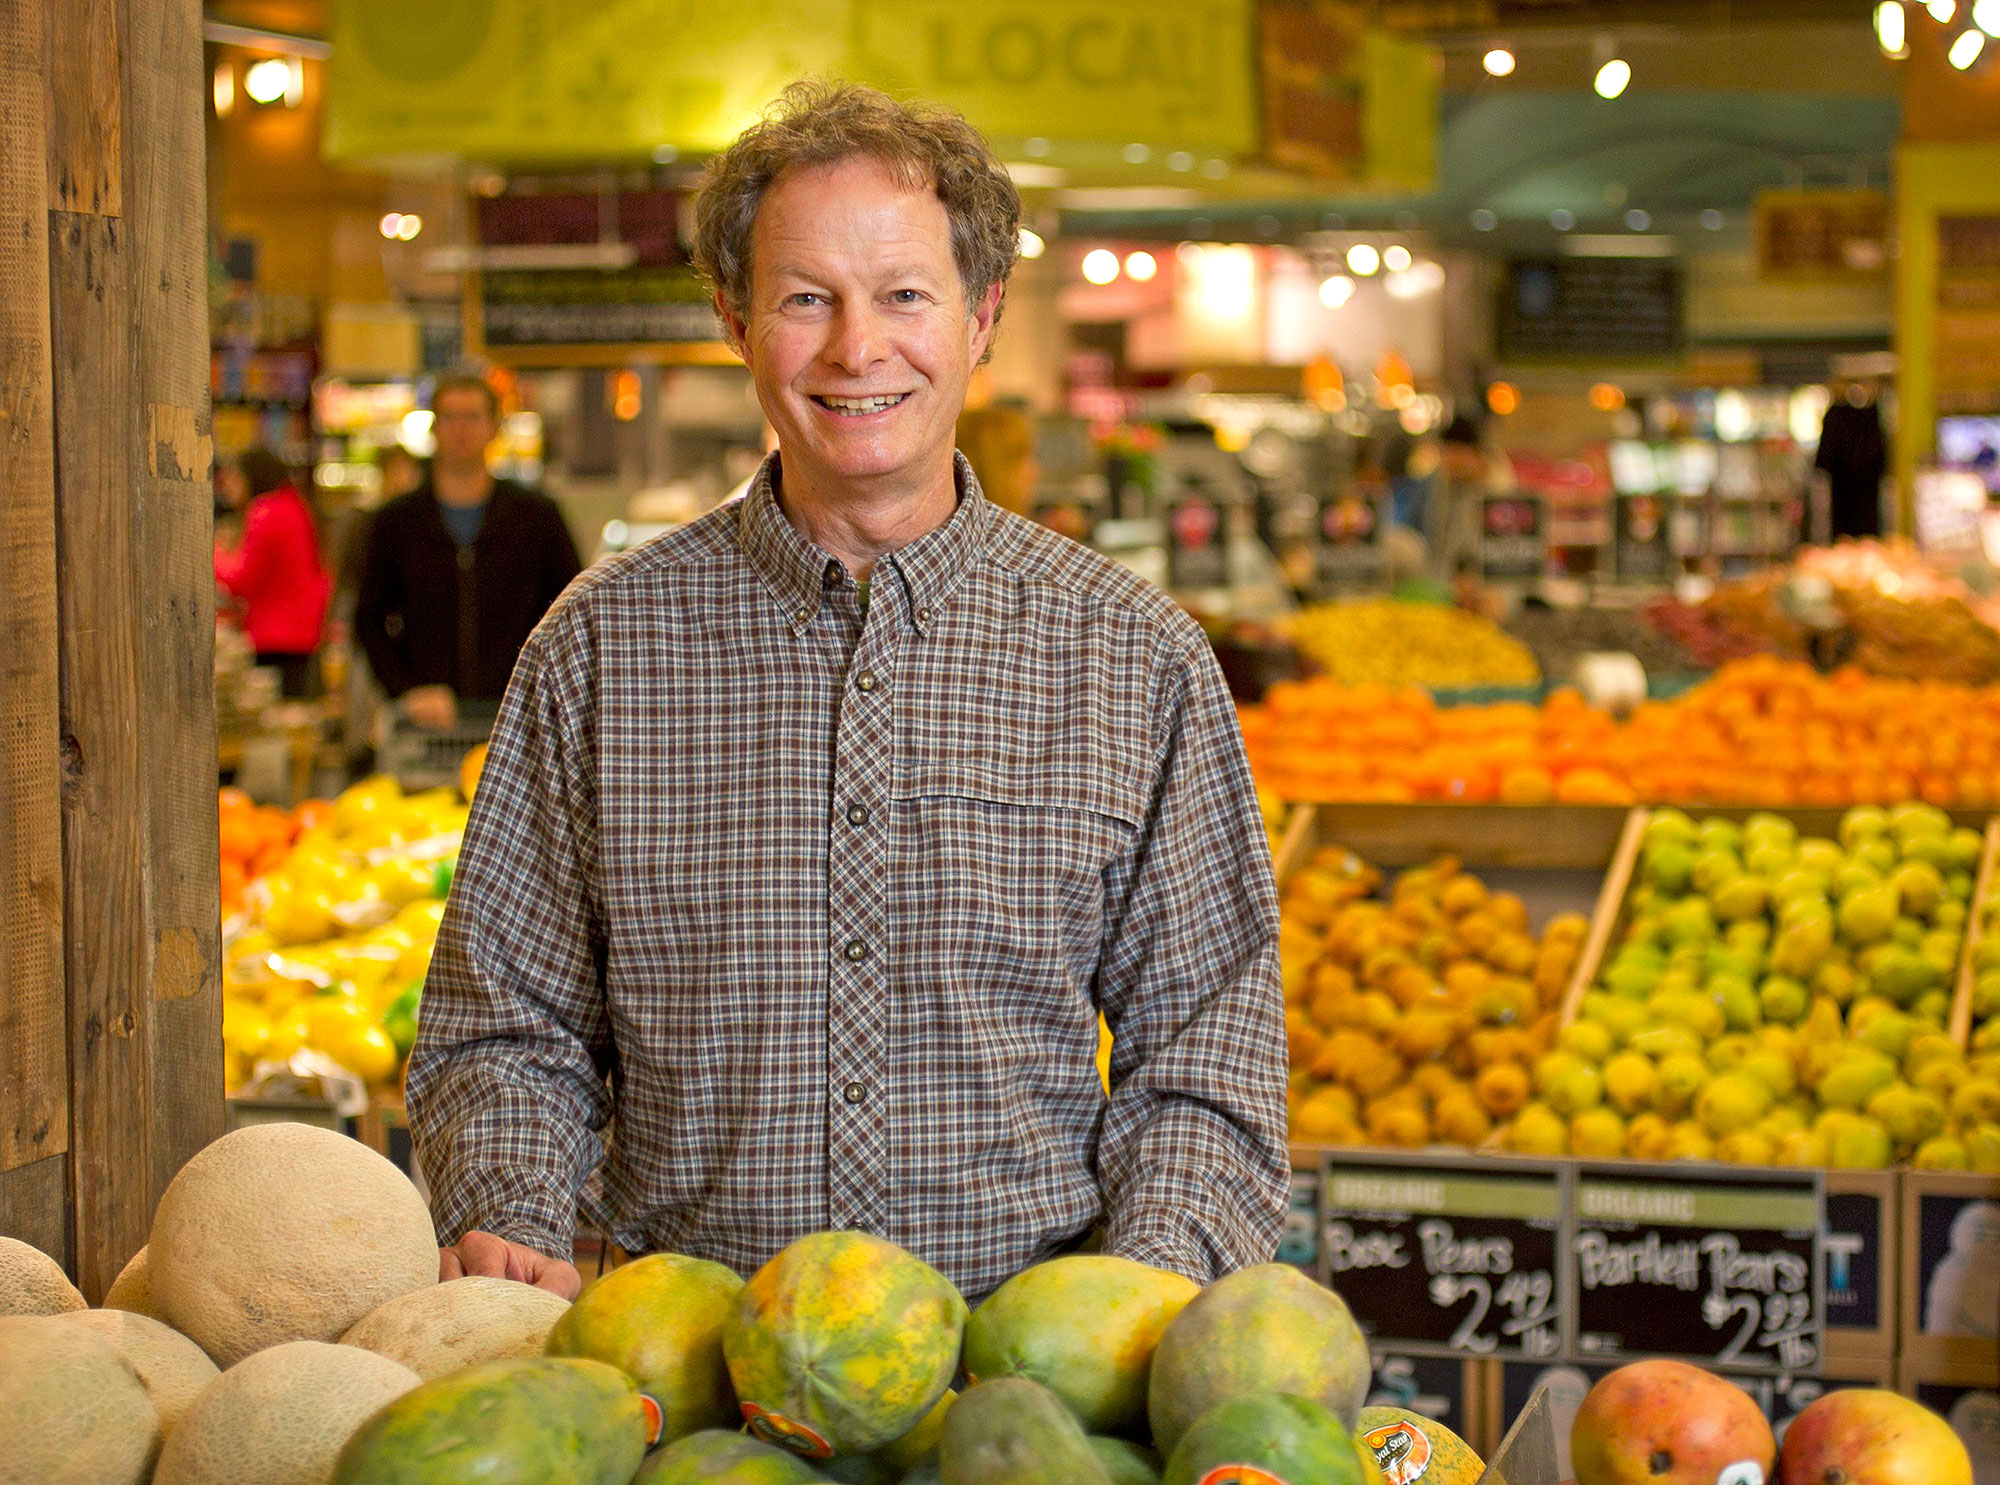 Whole Foods CEO John Mackey Shares the Diet that Got Him Back to His Teenage Weight